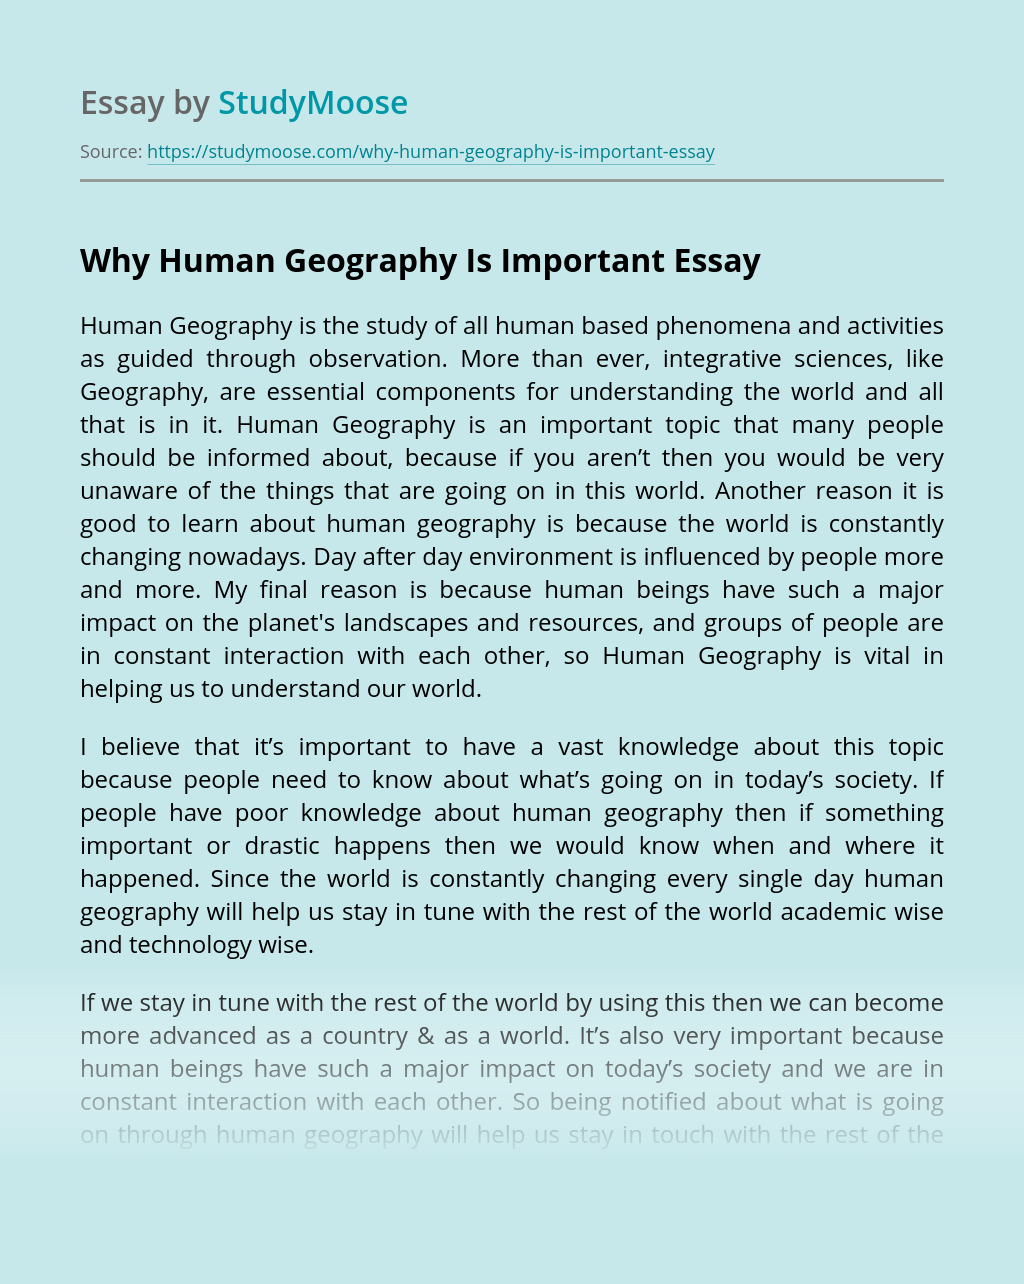 Why Human Geography Is Important